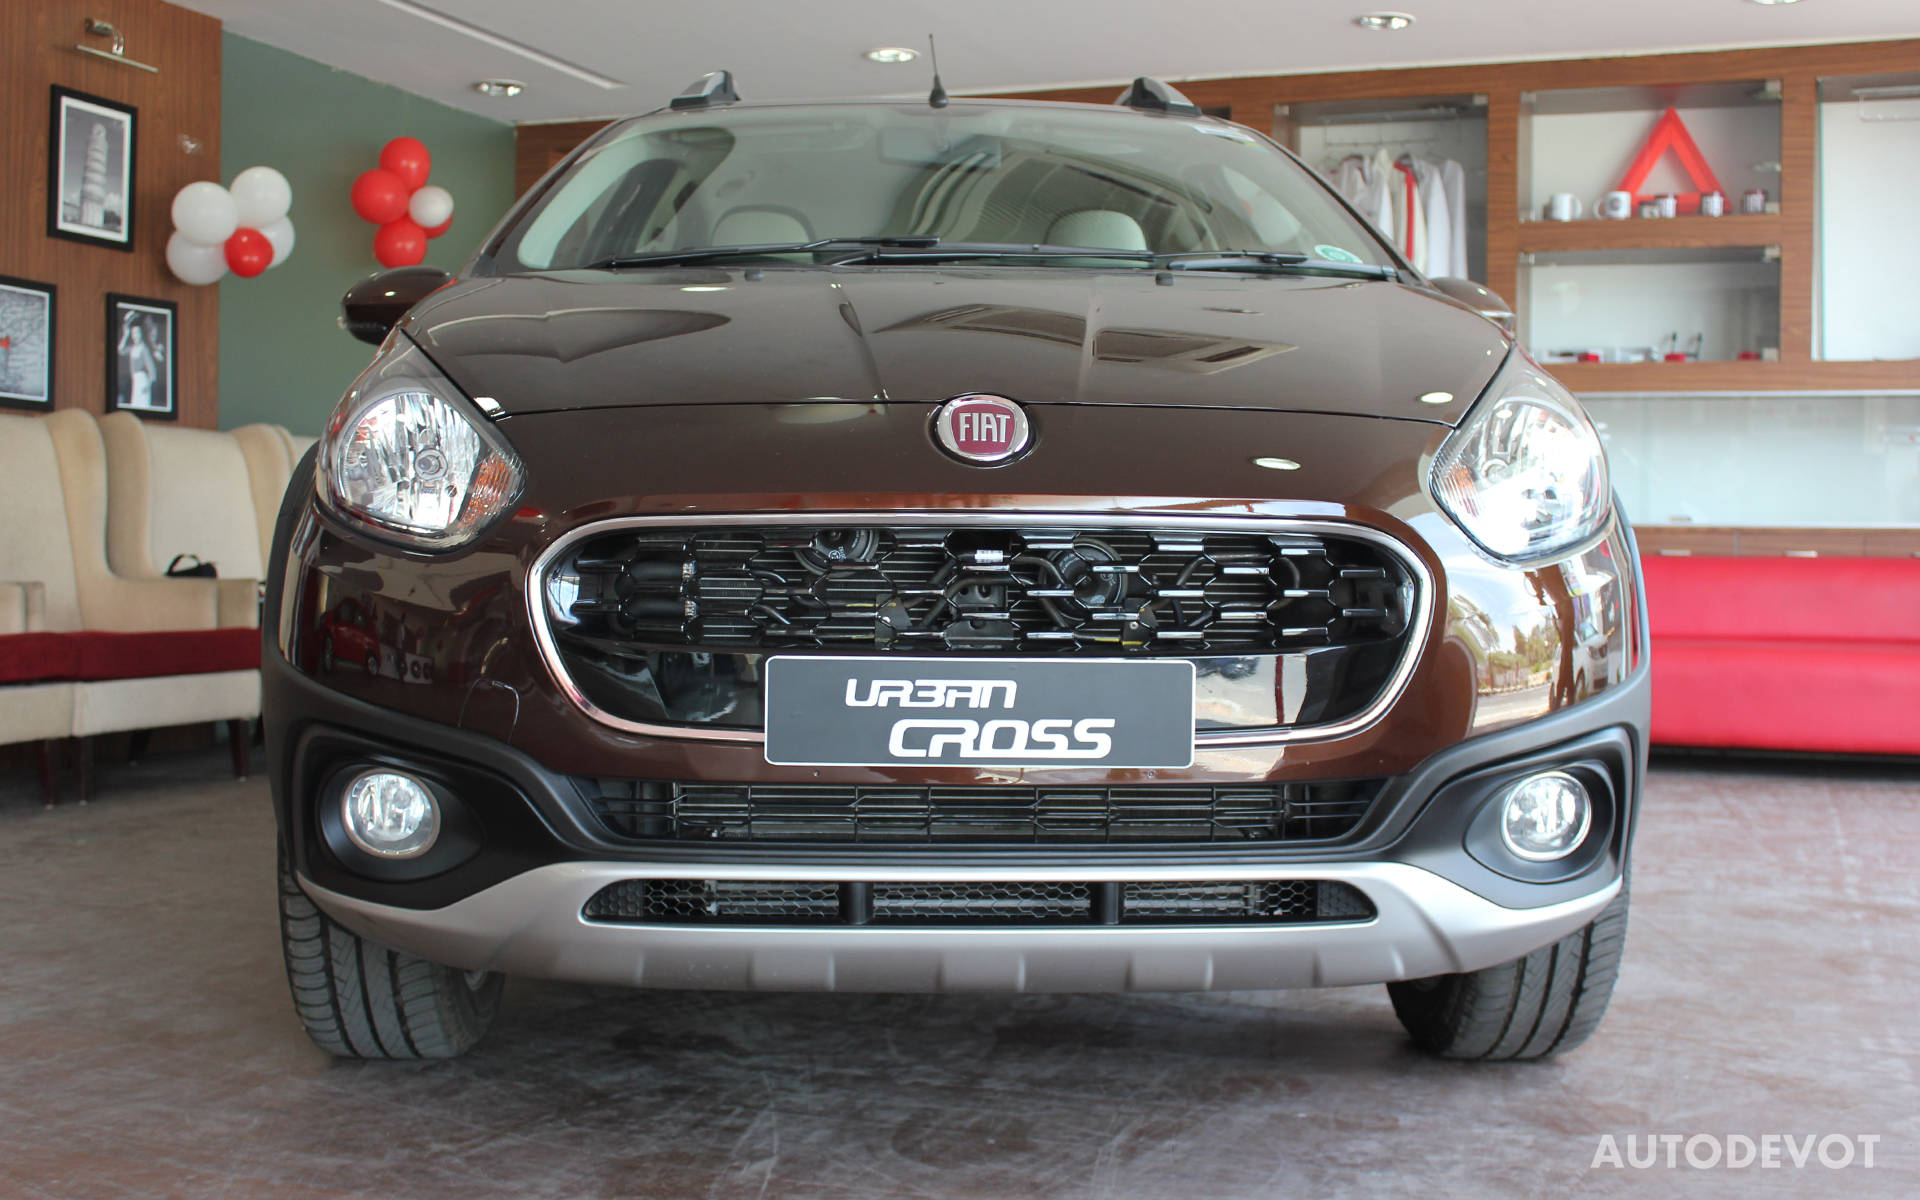 fiat-avventura-urban-cross